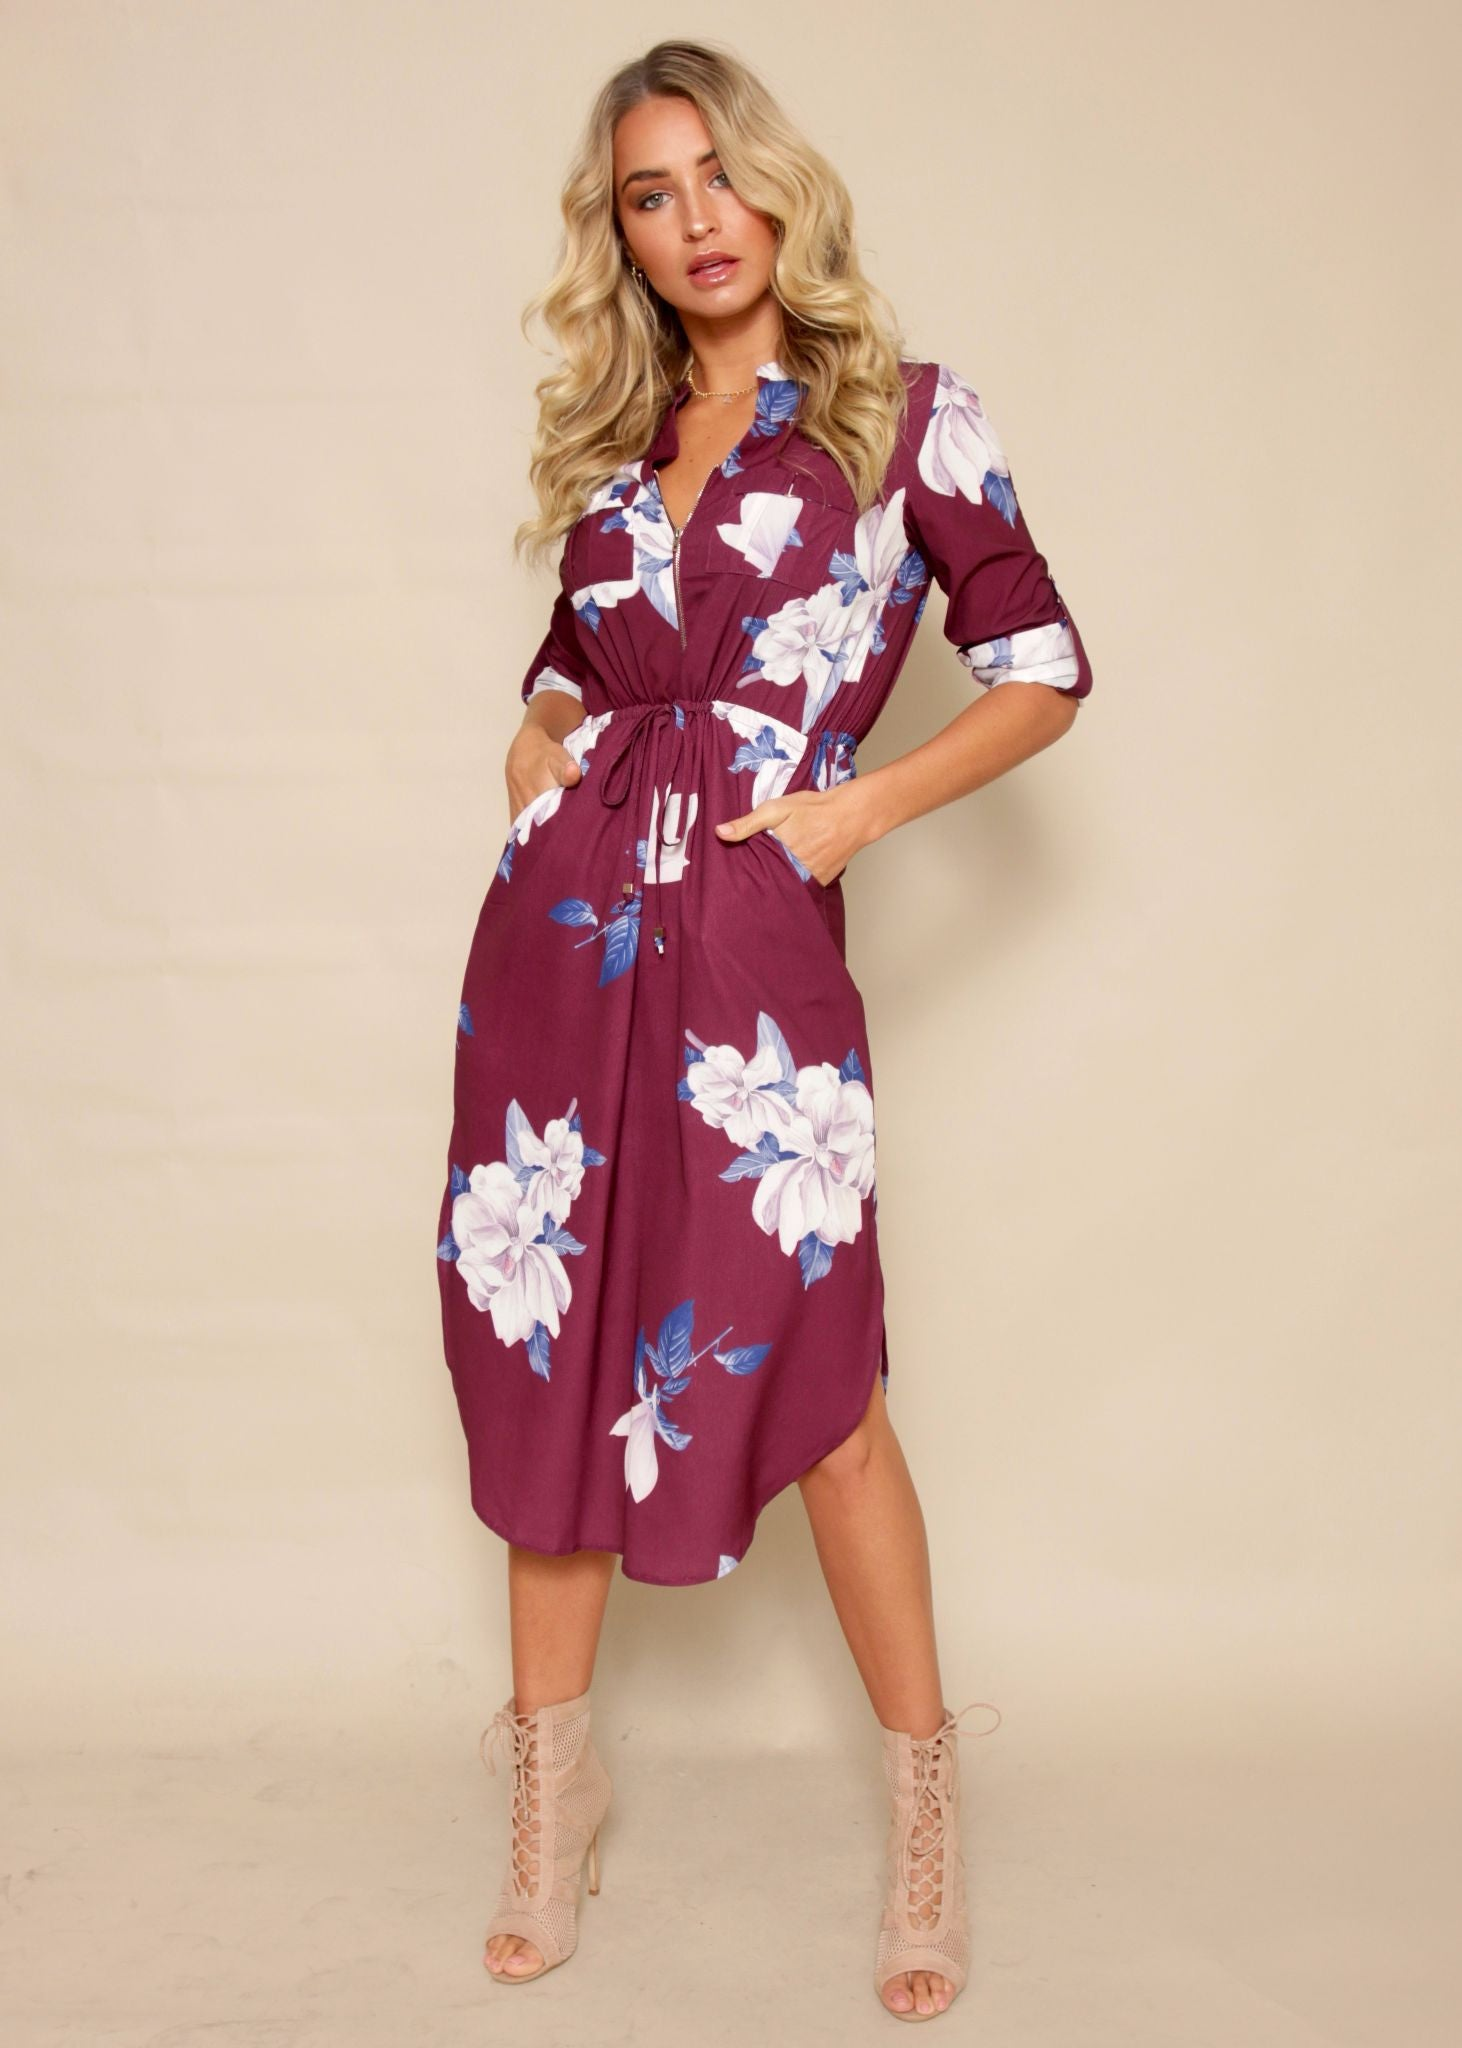 Low Lights Tunic Dress - Mulberry